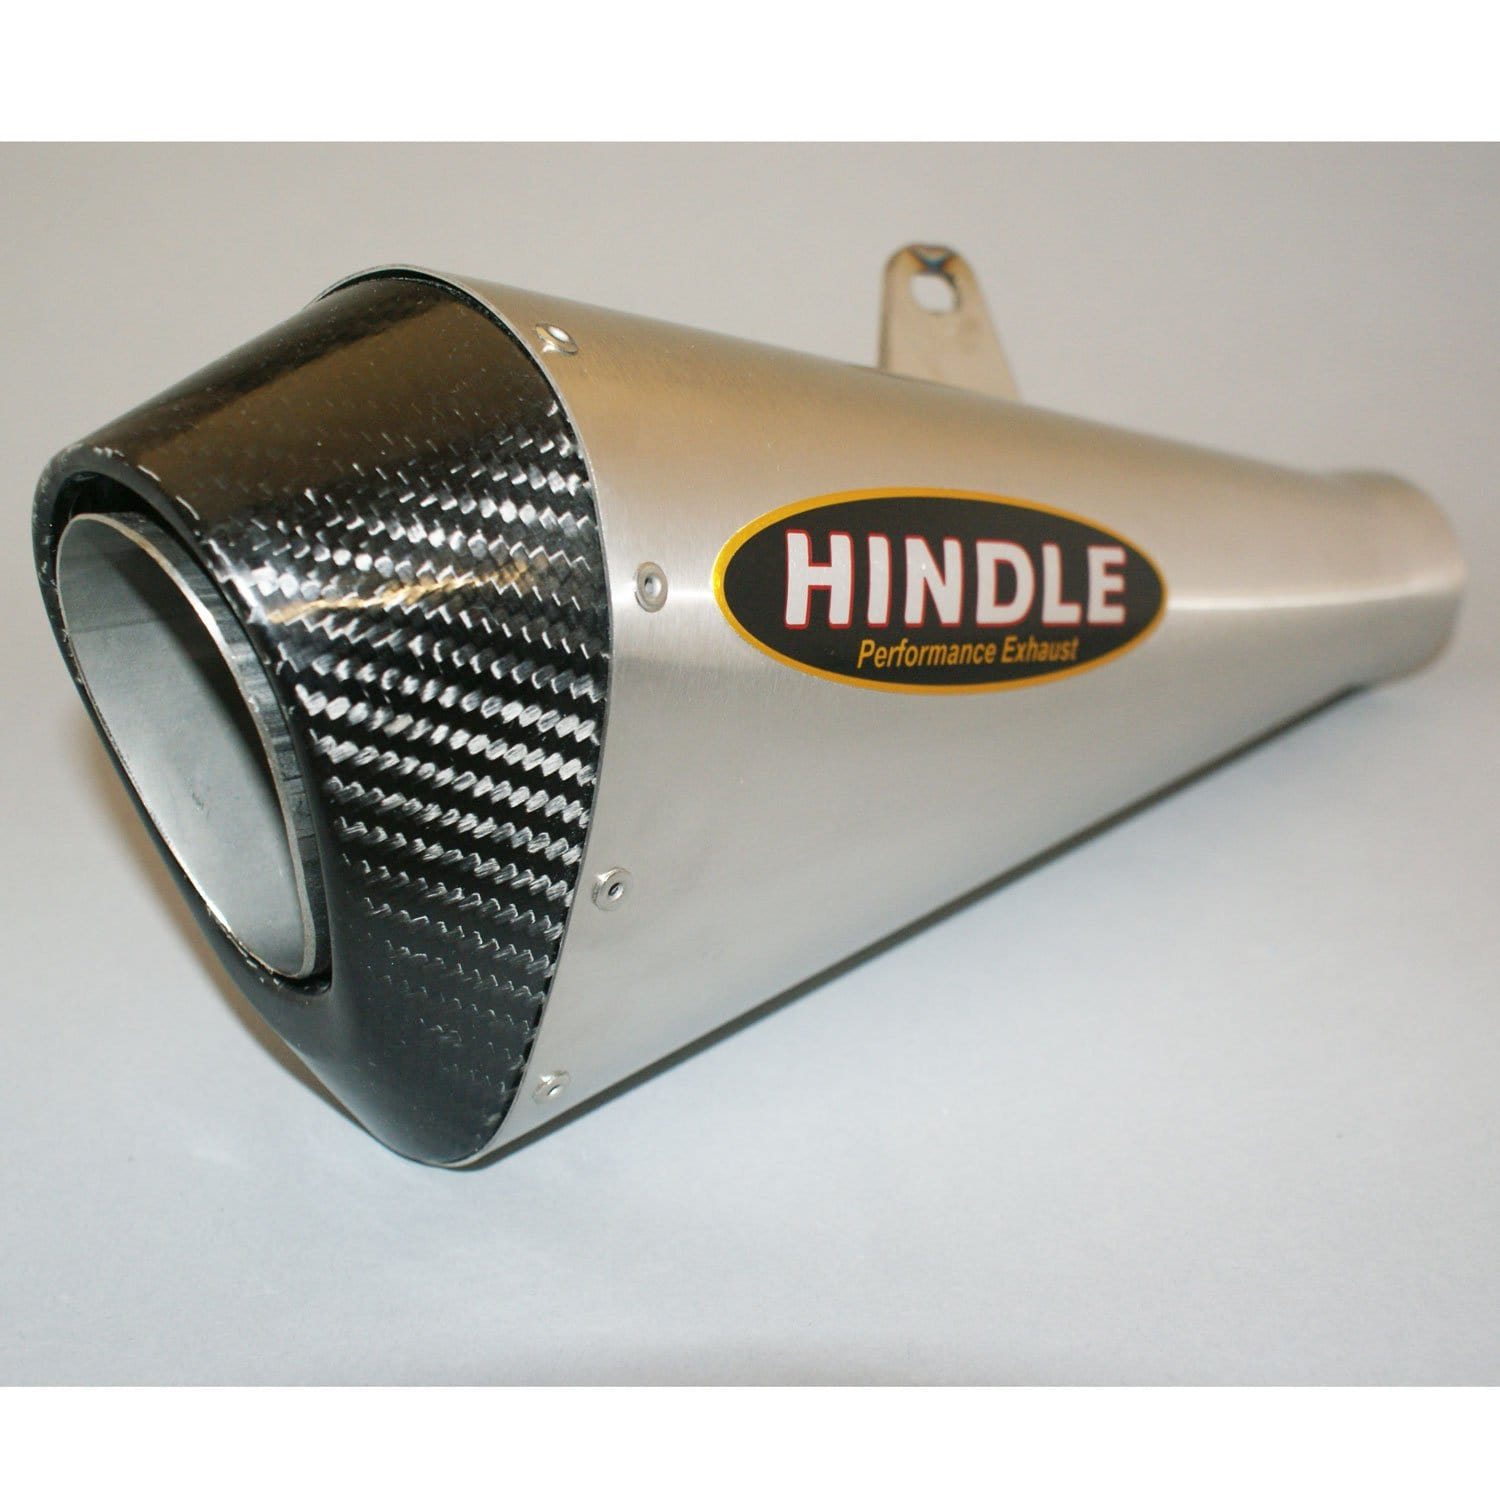 Hindle Evo Megaphone Full System Kawasaki ZX6R/636 2009-20 - Louden Clear Designs